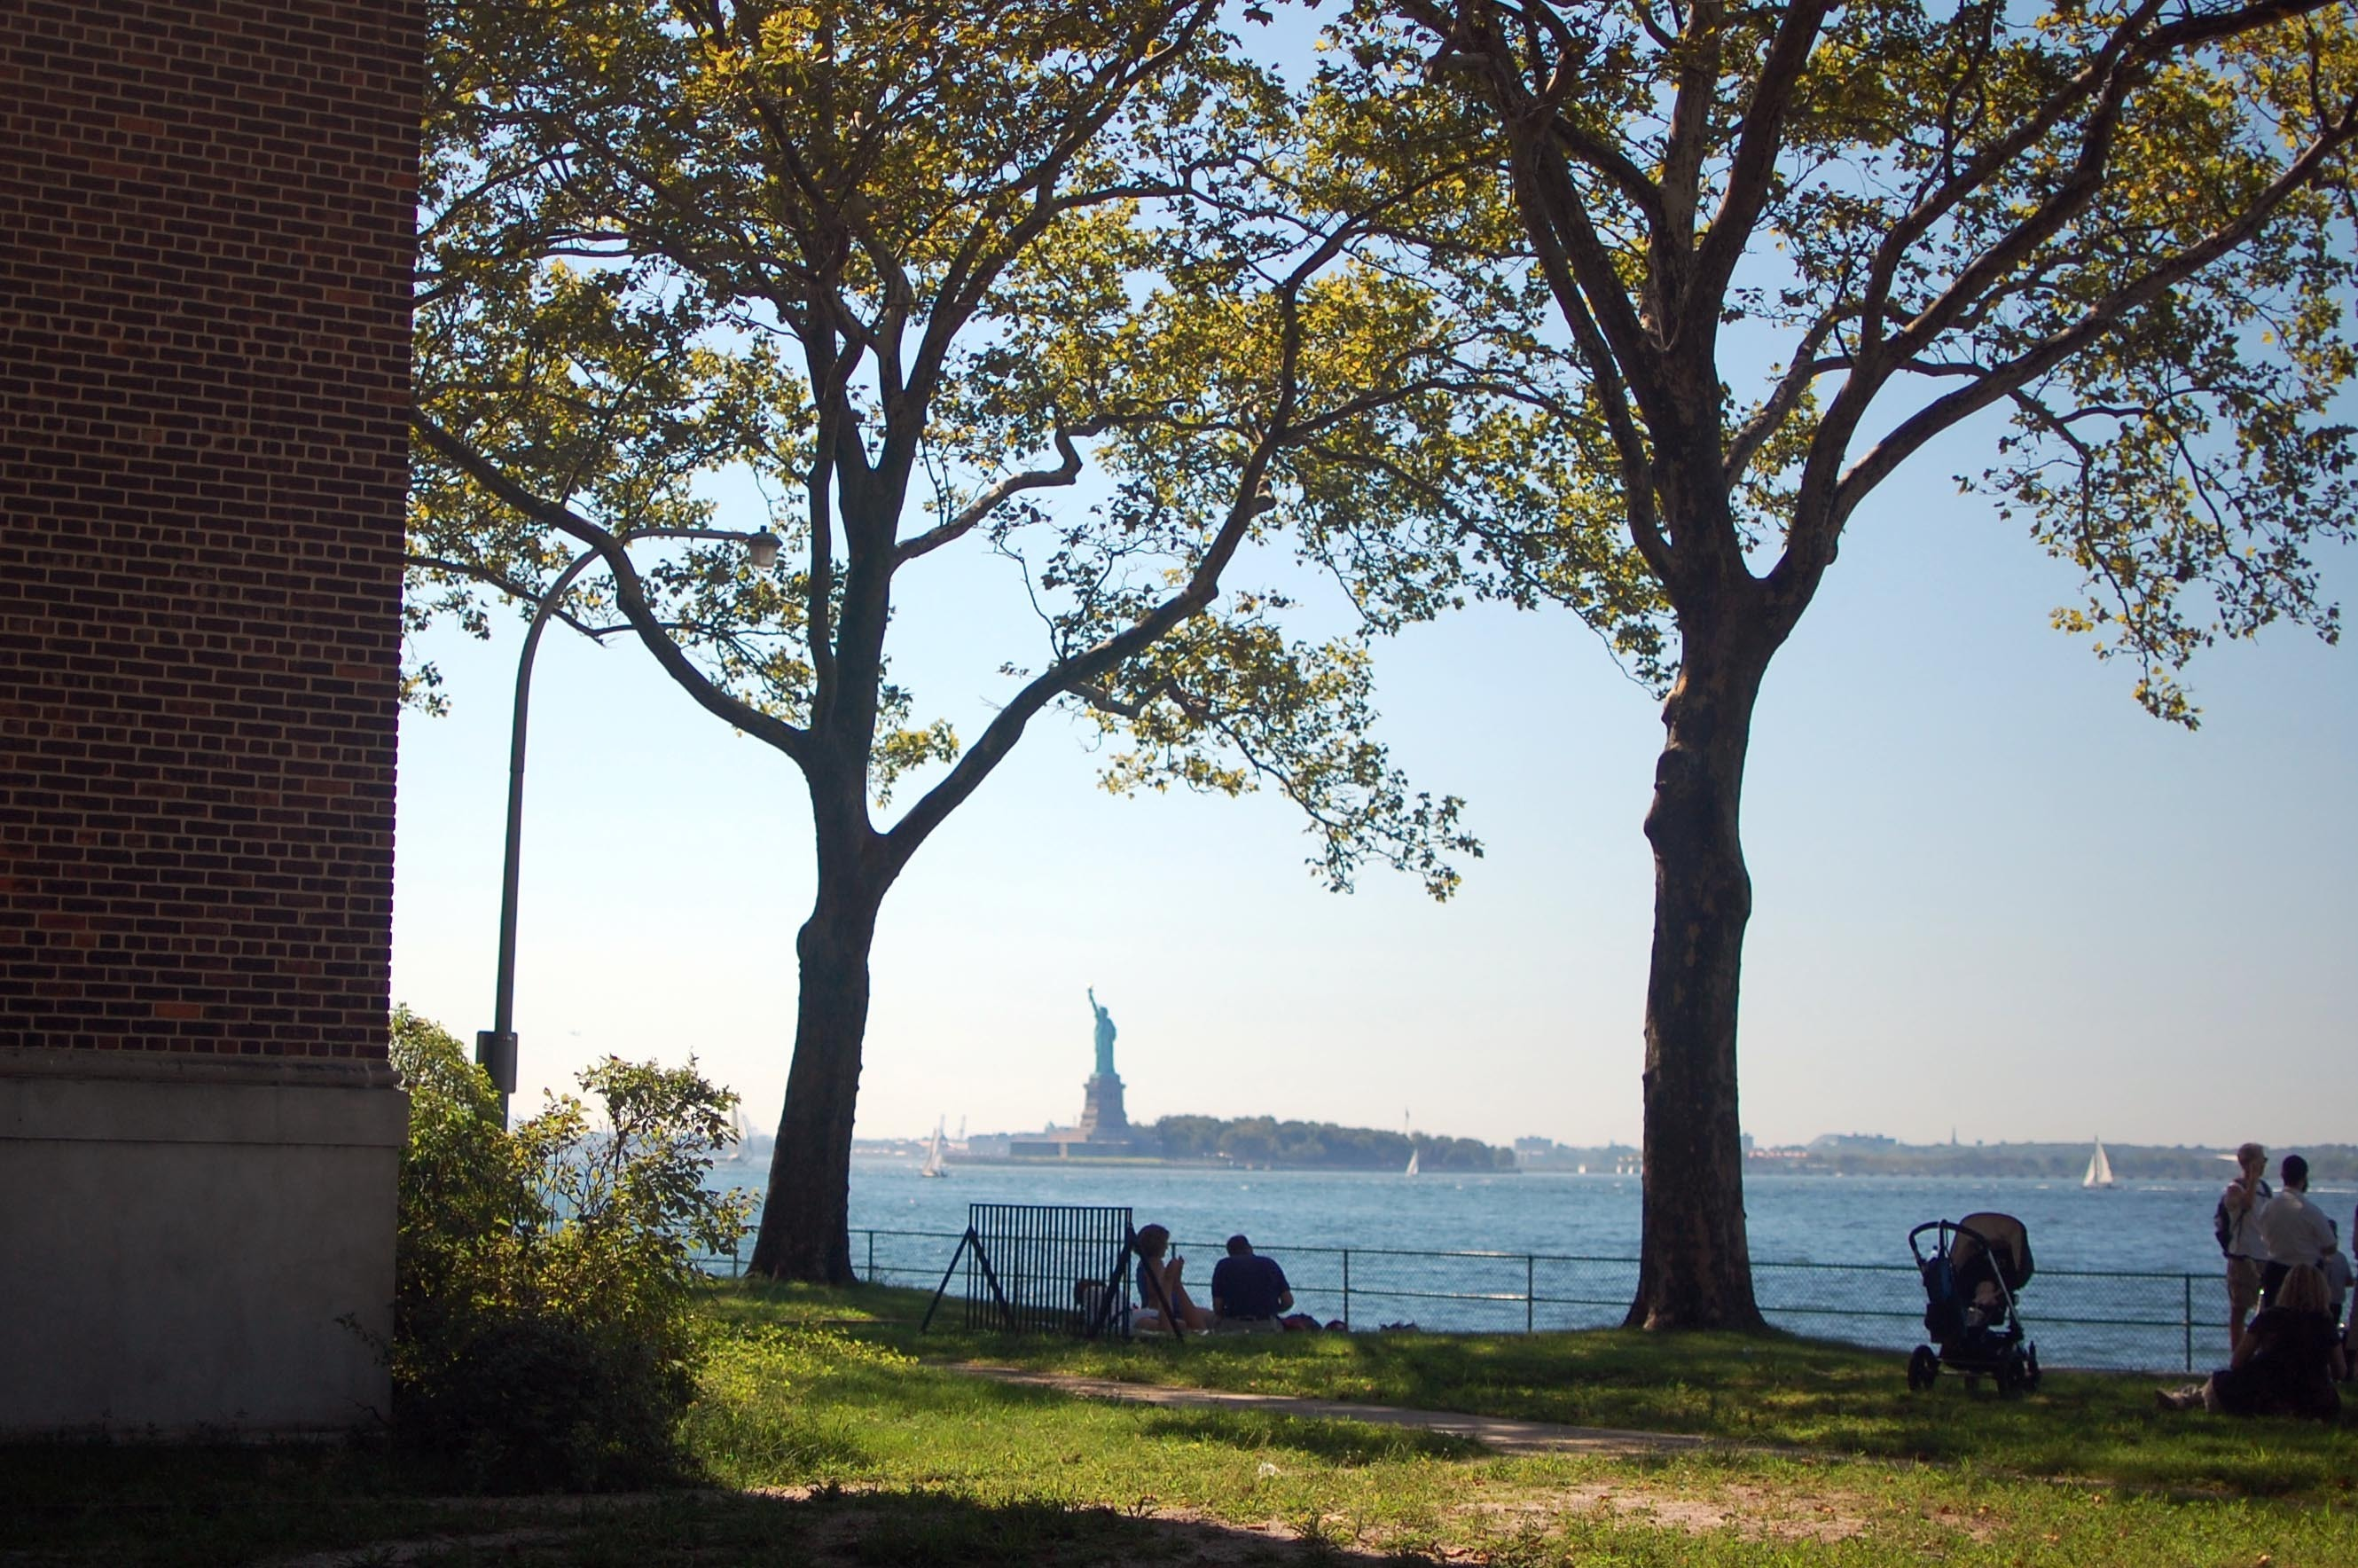 Summer at Governors Island